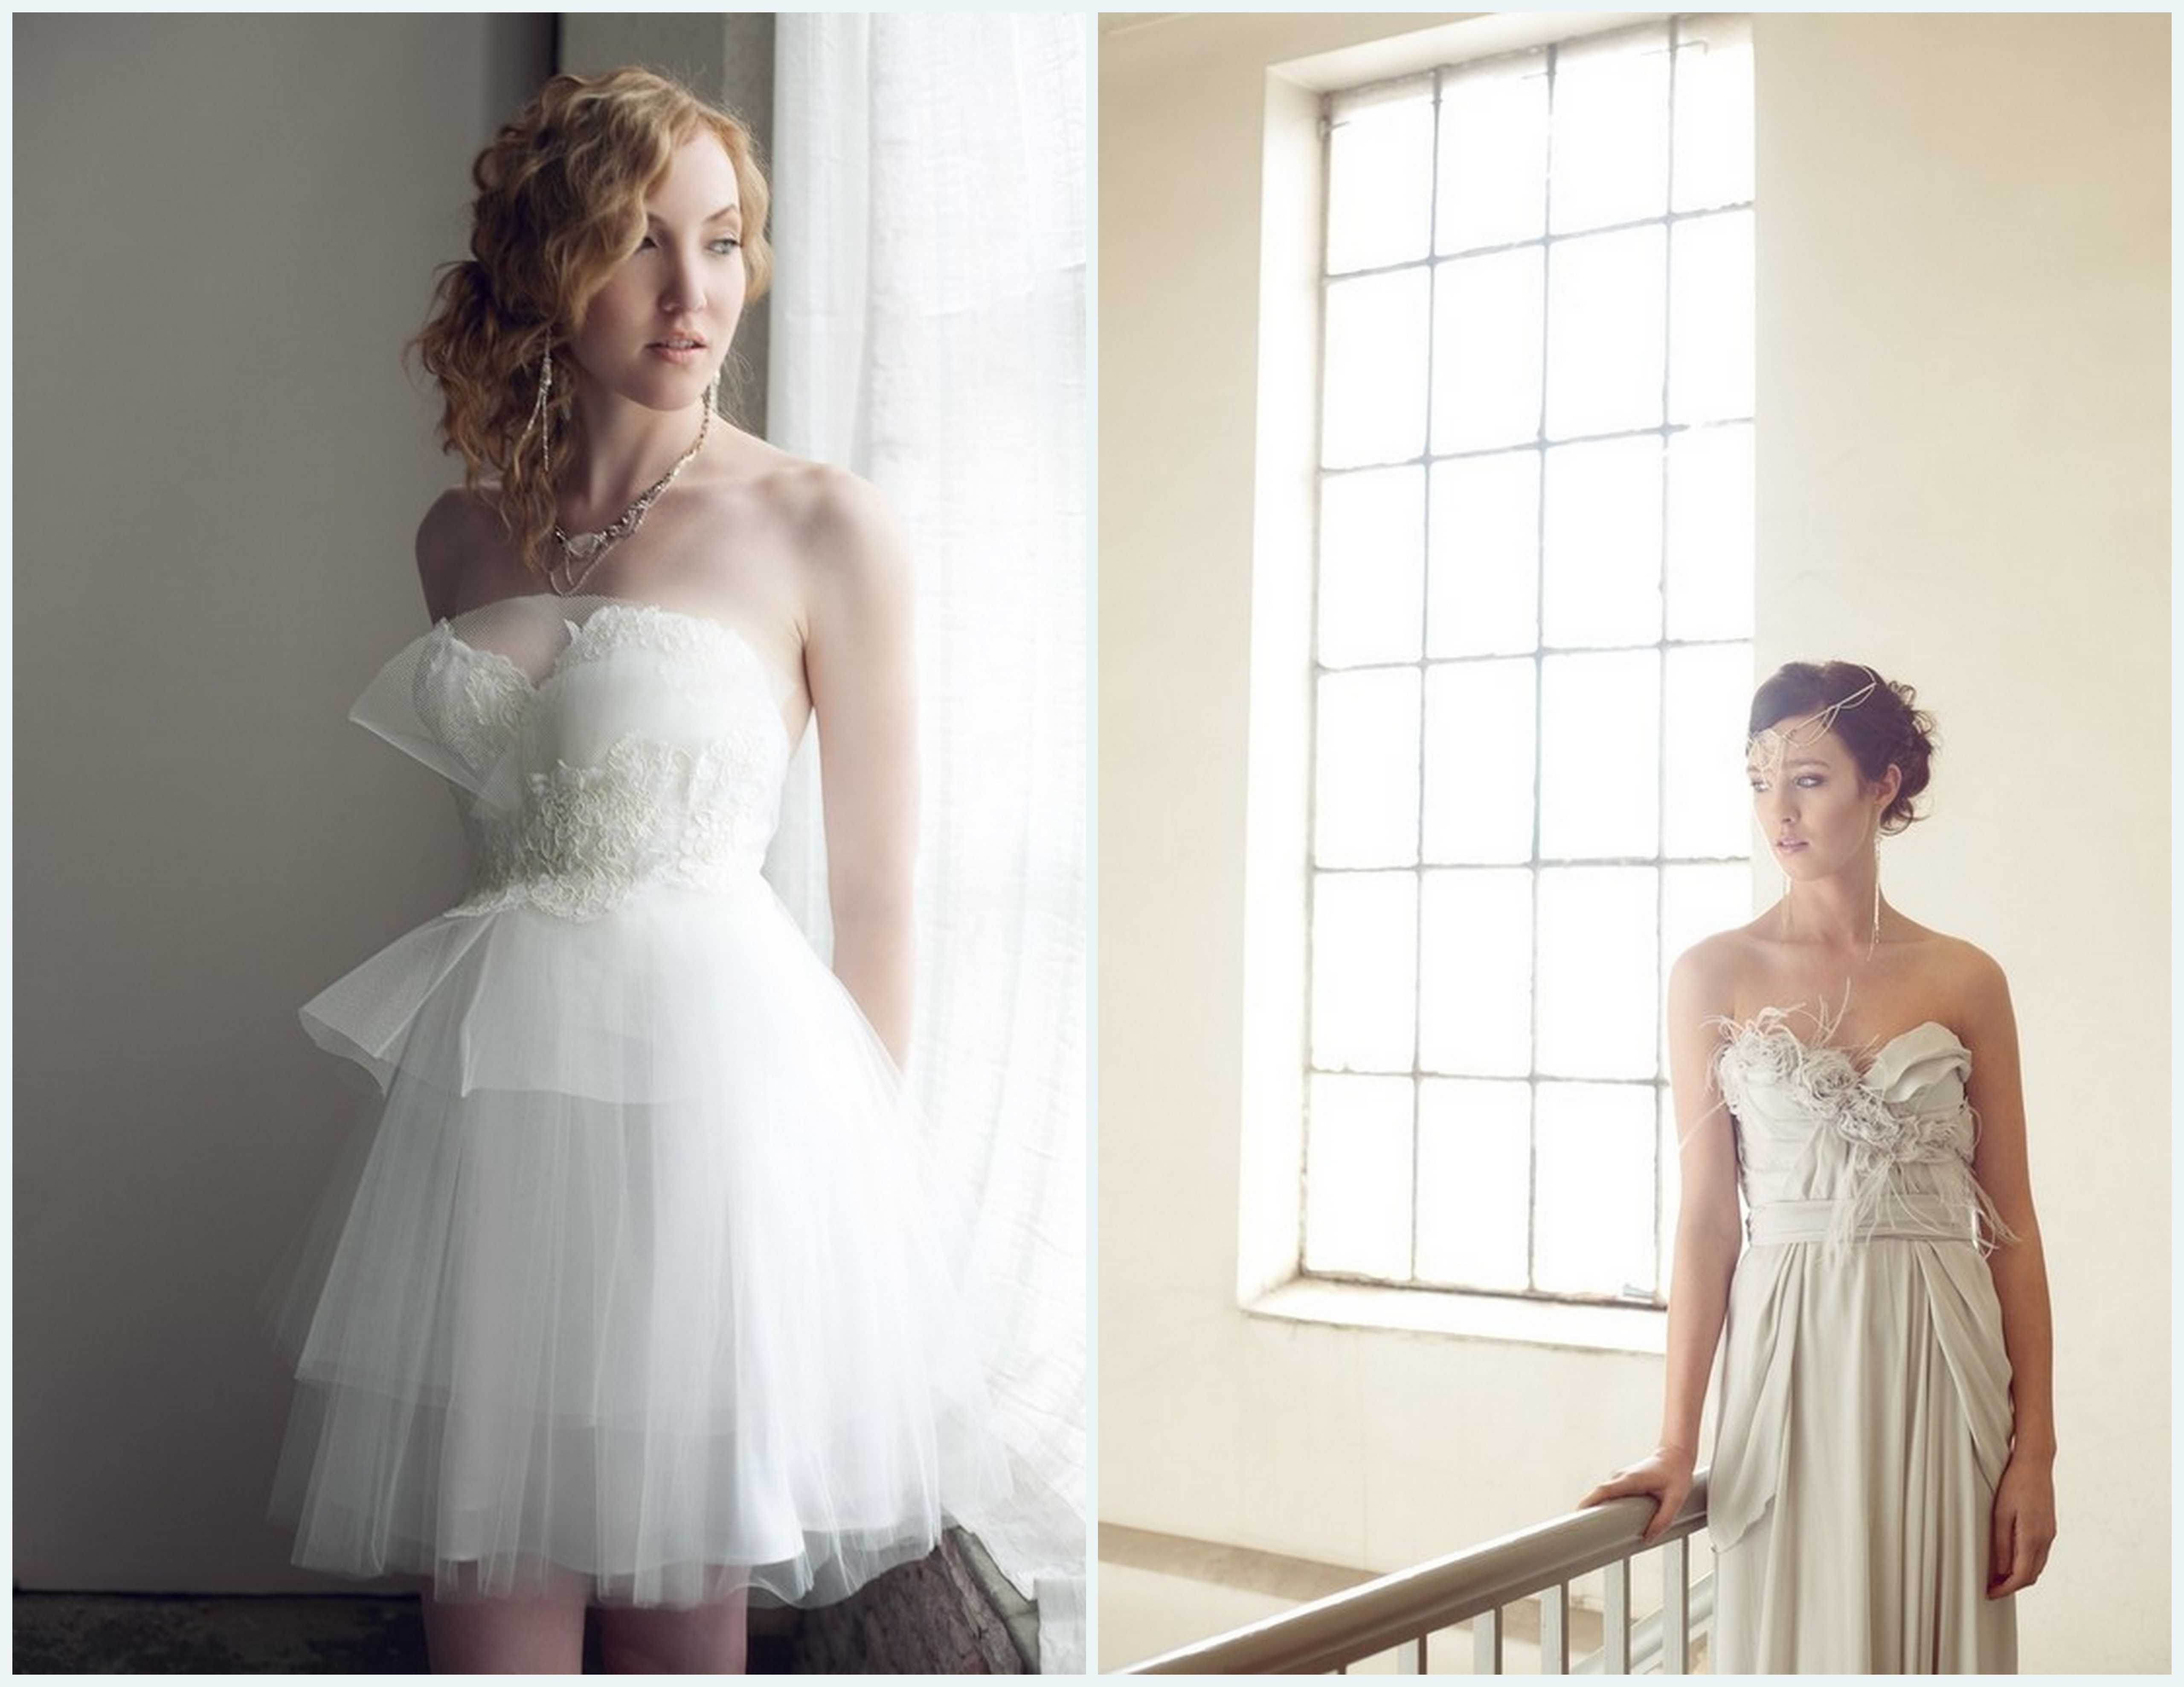 Claire LaFaye Wedding Gown Collection on Etsy